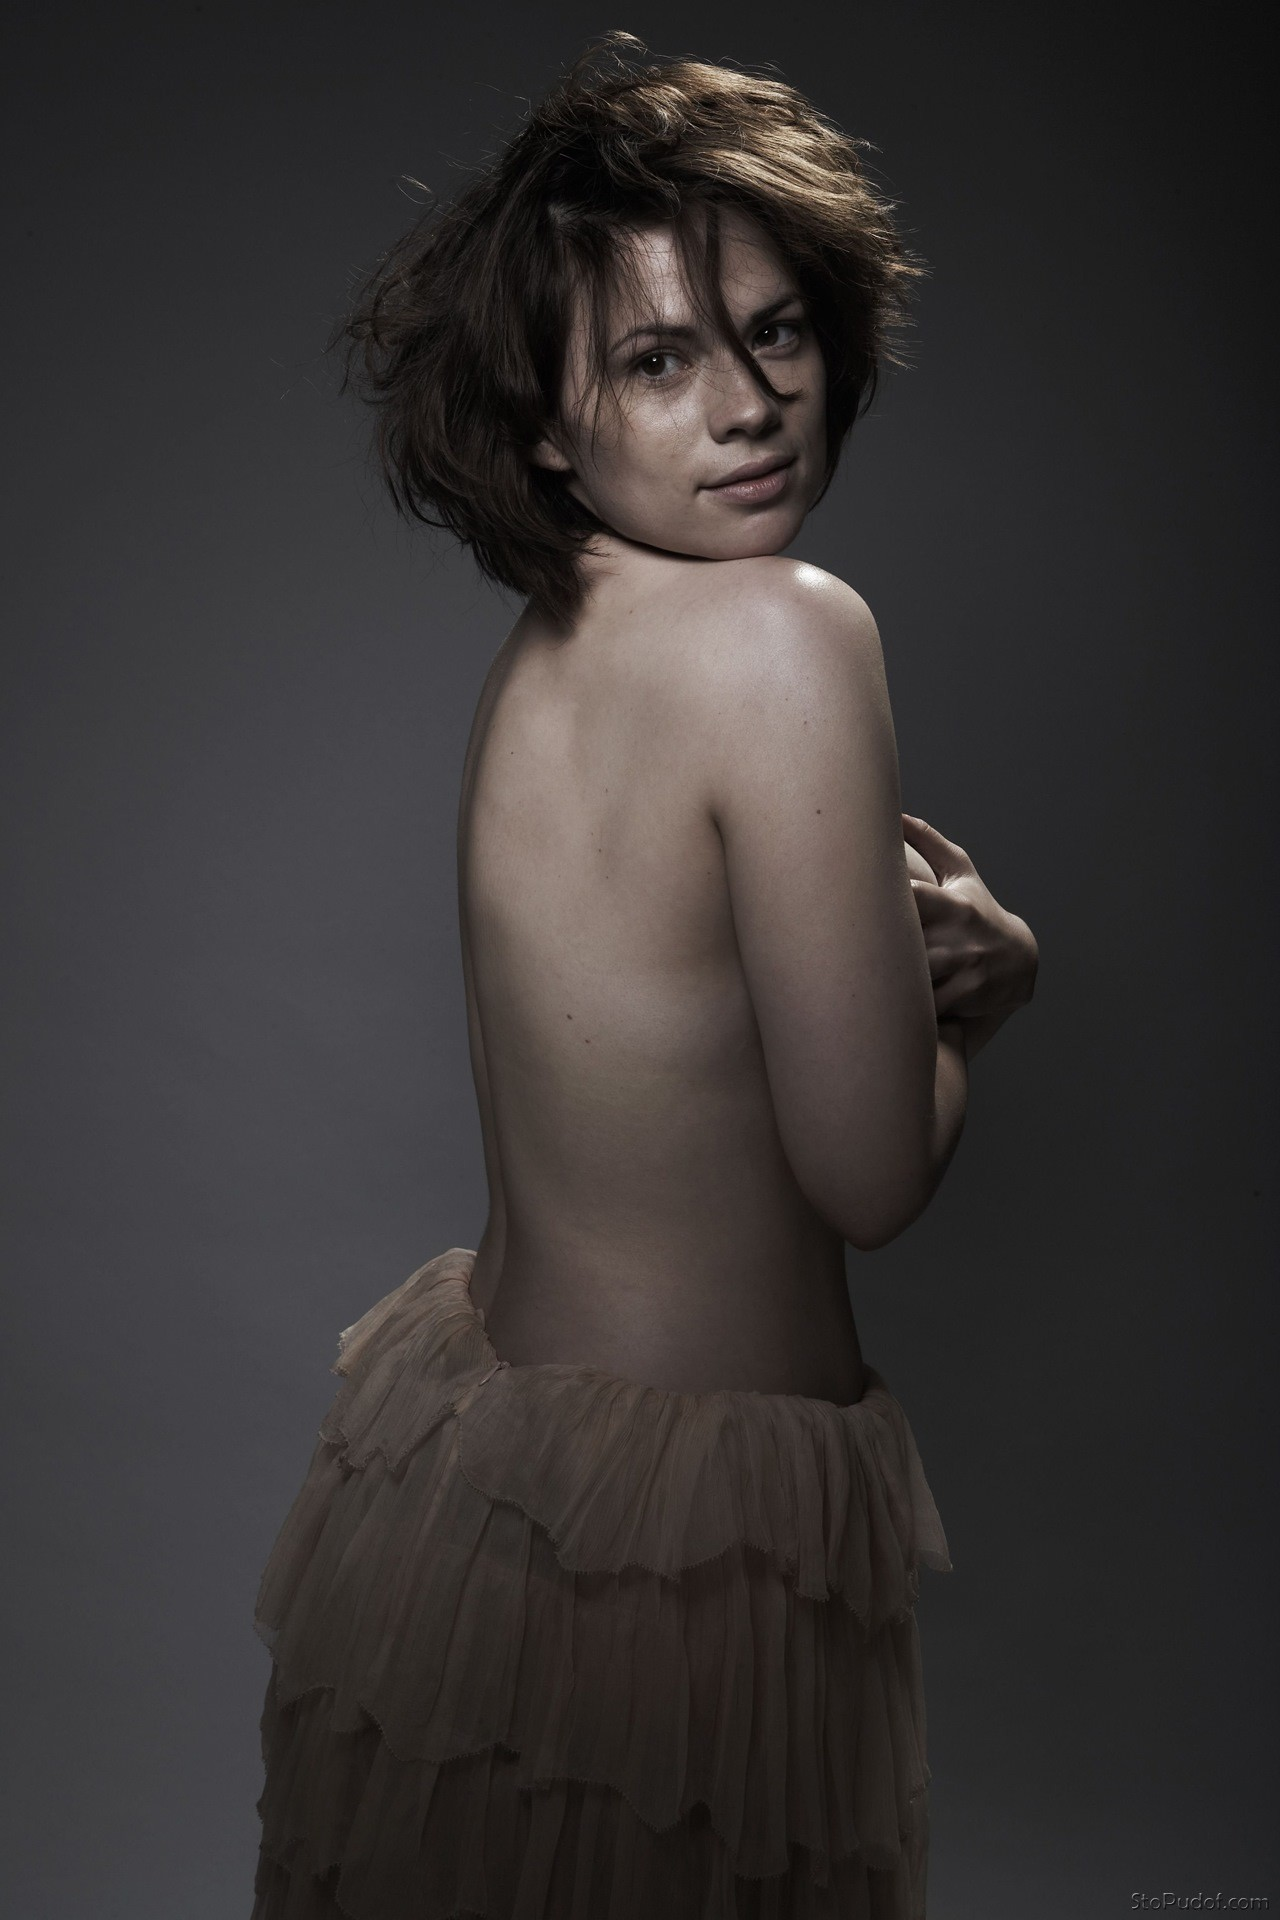 Hayley Atwell nude photo gallery - UkPhotoSafari